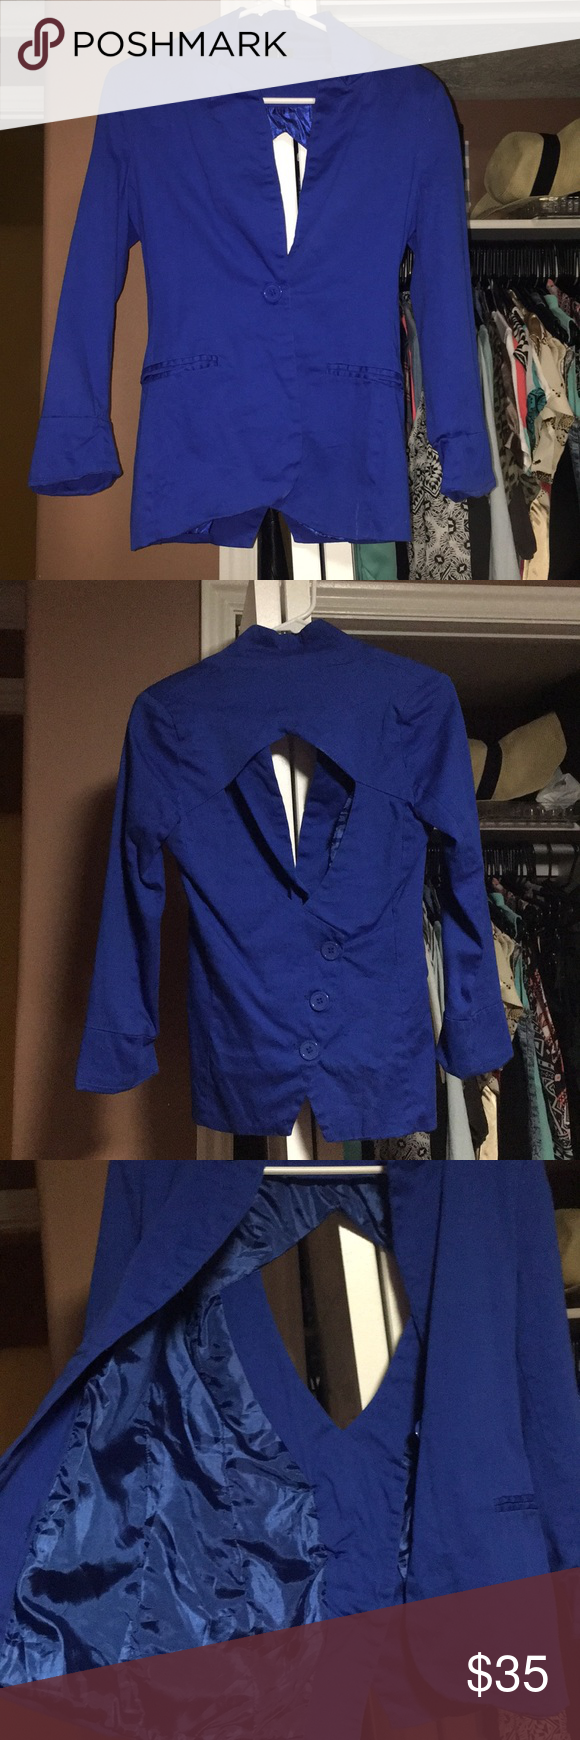 Blazer Royal blue back out blazer Size small Worn good condition Windsor Jackets & Coats Blazers